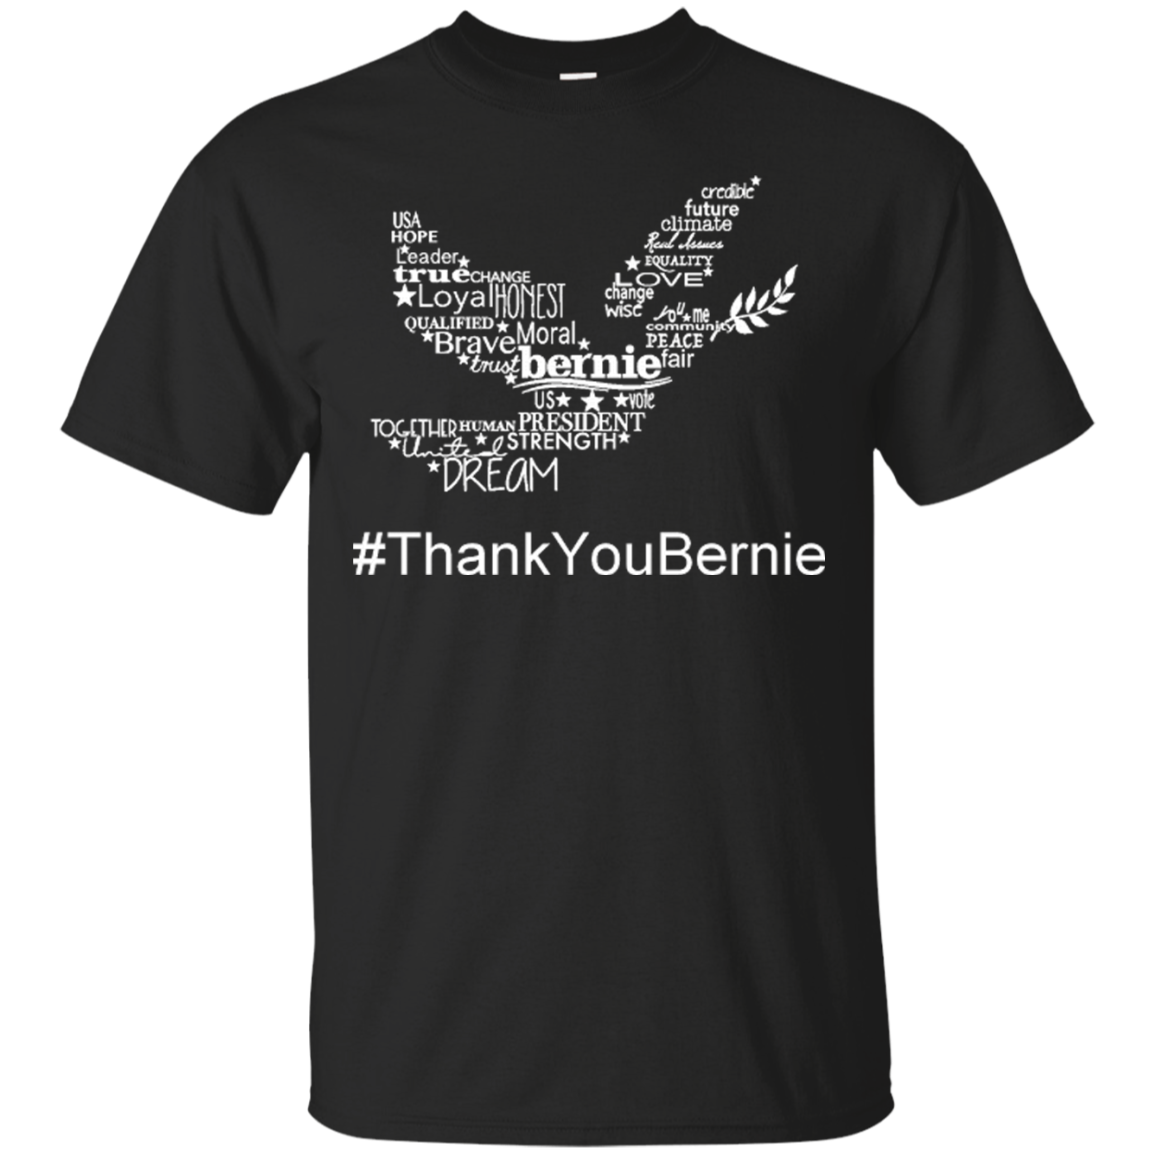 Bernie Sanders Shirts Bernie Dream Strength President ThankYouBernie Hoodies Sweatshirts